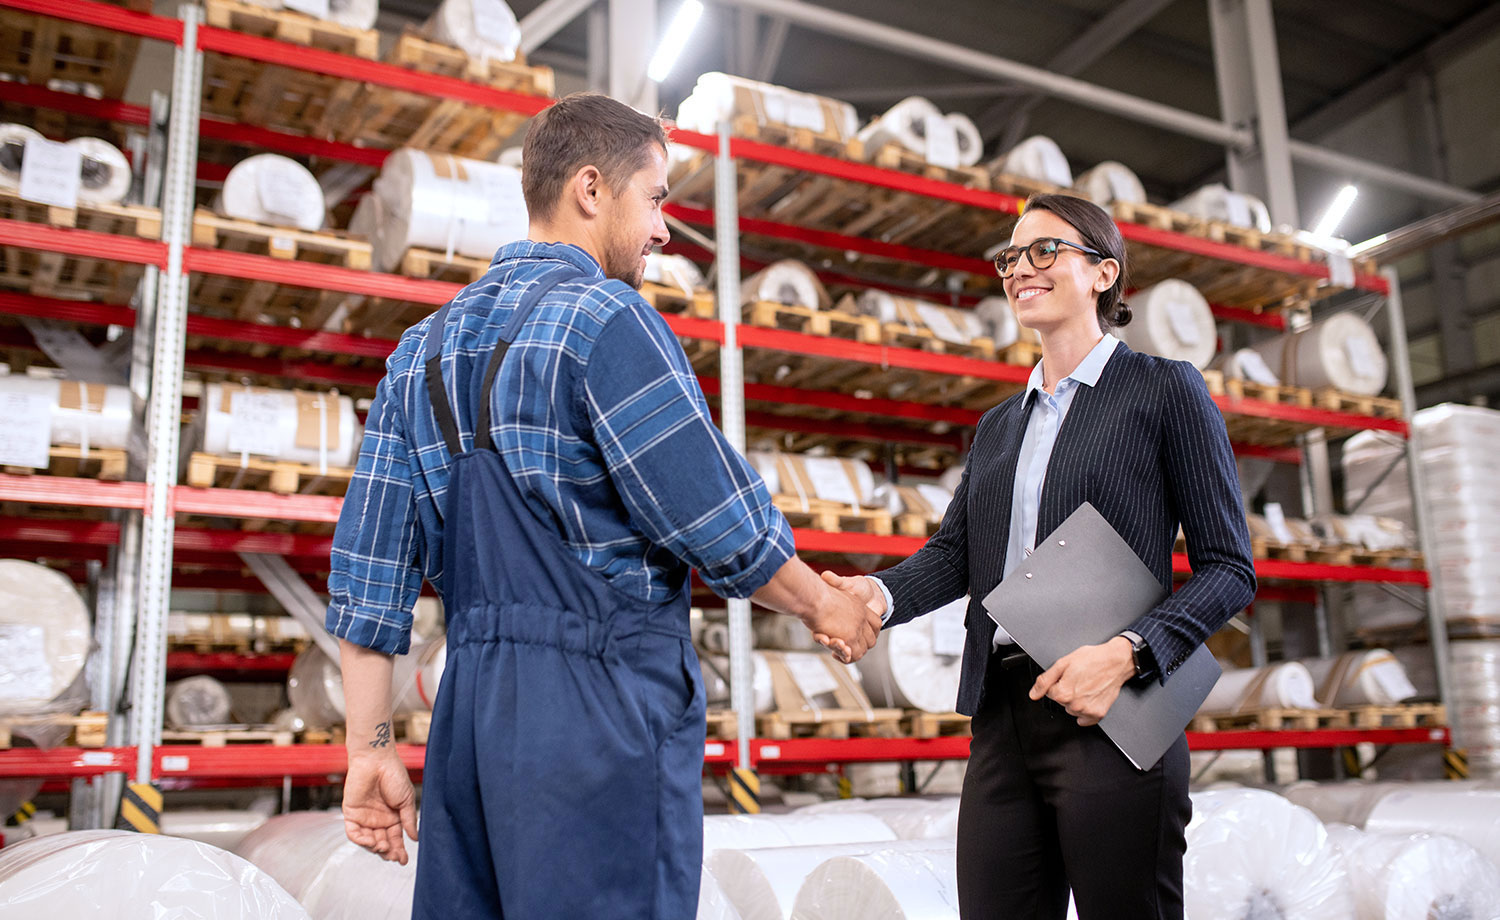 Business partners shaking hands in a warehouse.